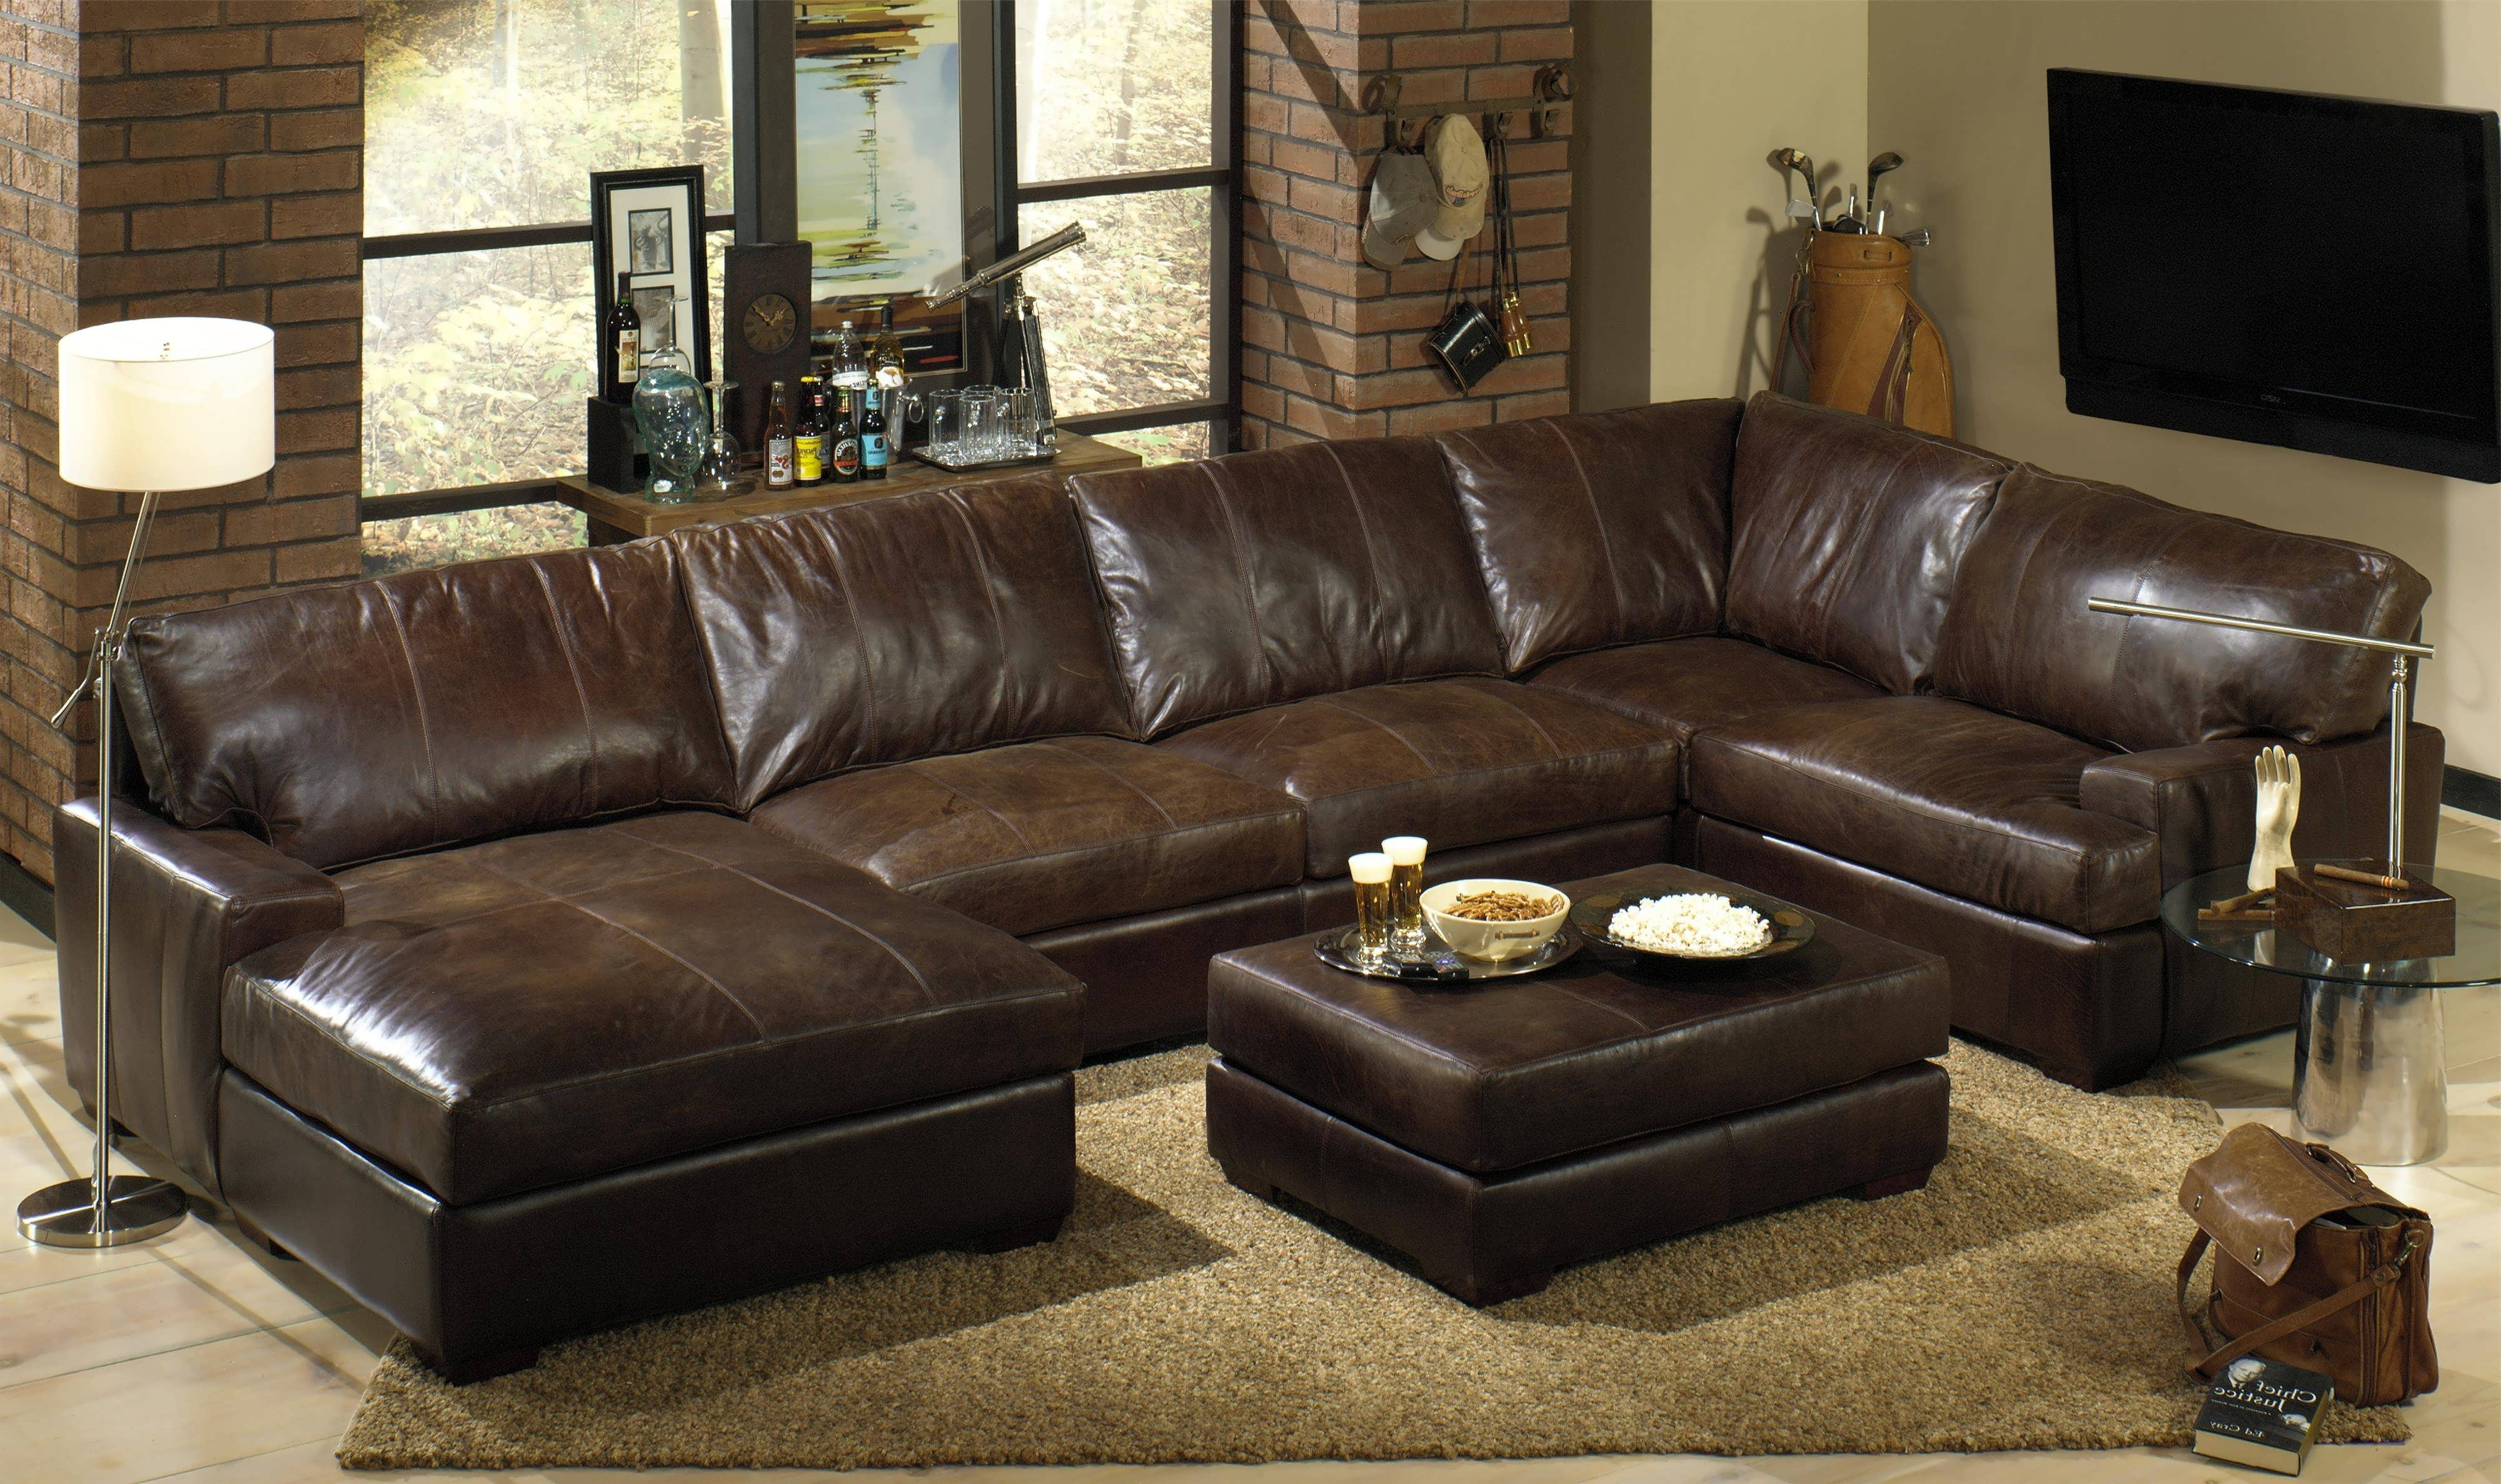 Sofa : Chaise Sofa Sectional With Chaise And Recliner White Within Newest Leather Sofa Chaises (View 5 of 15)